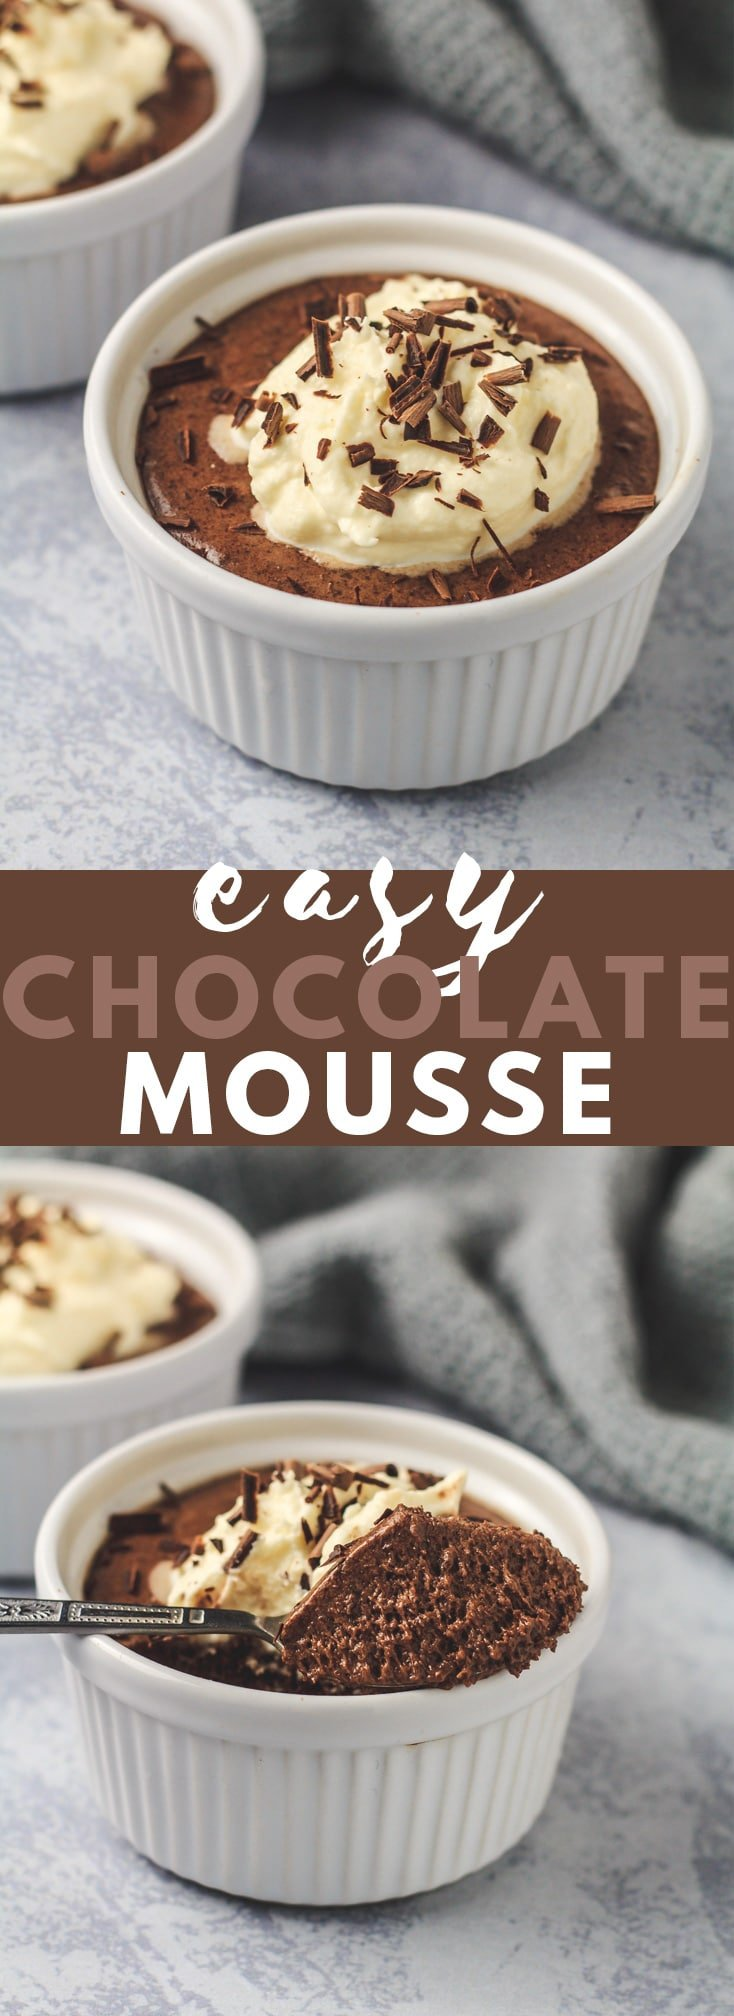 Easy Chocolate Mousse - A deliciously rich and creamy chocolate mousse that is also light and fluffy, and big on flavour. The most indulgent no-bake chocolate dessert!